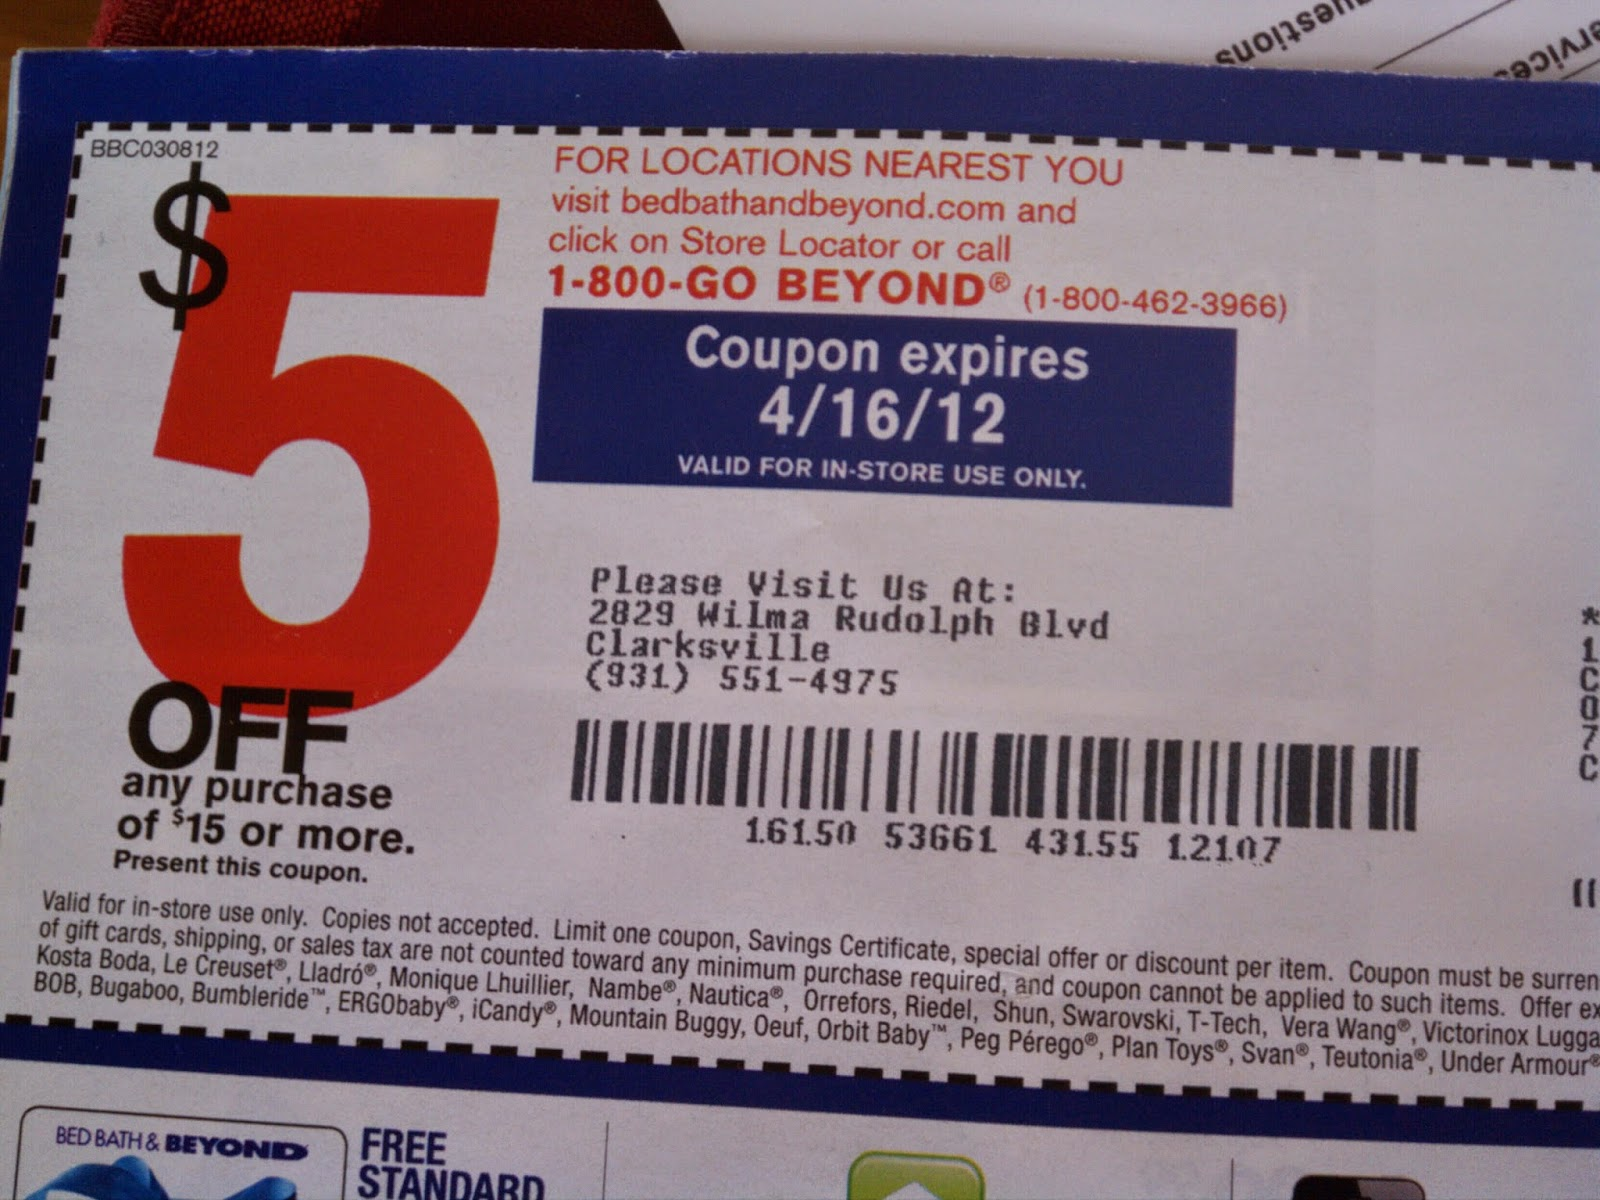 33-off coupon